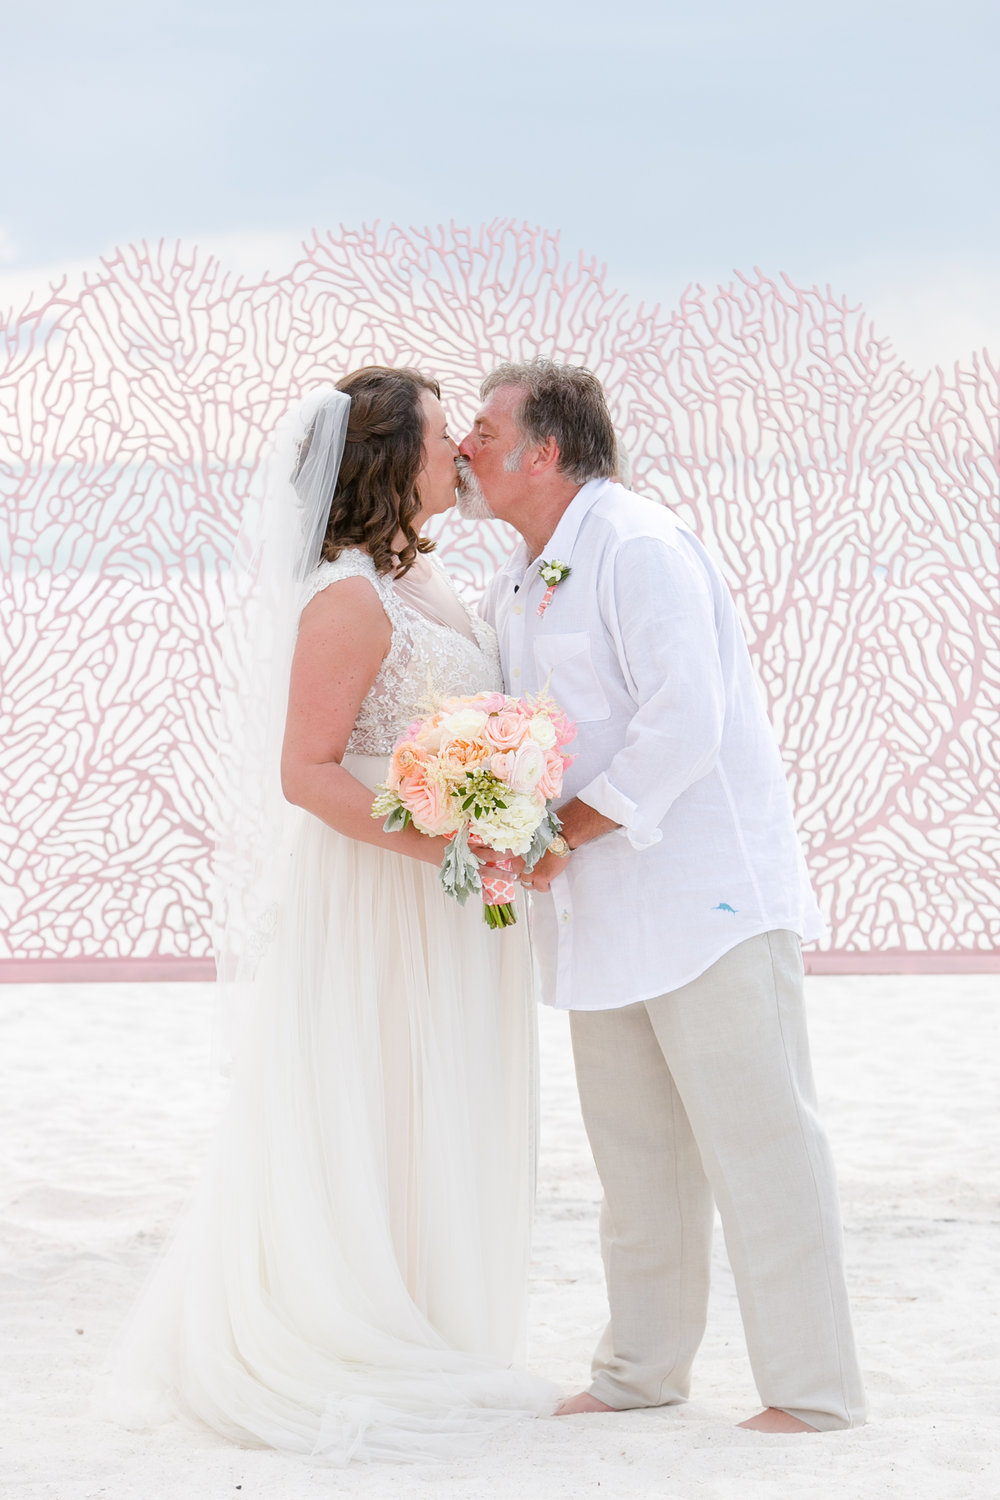 JW Marriott Marco Island Beach Resort  - Marco Island, FL  Sea Fan, decorative wedding backdrop panel